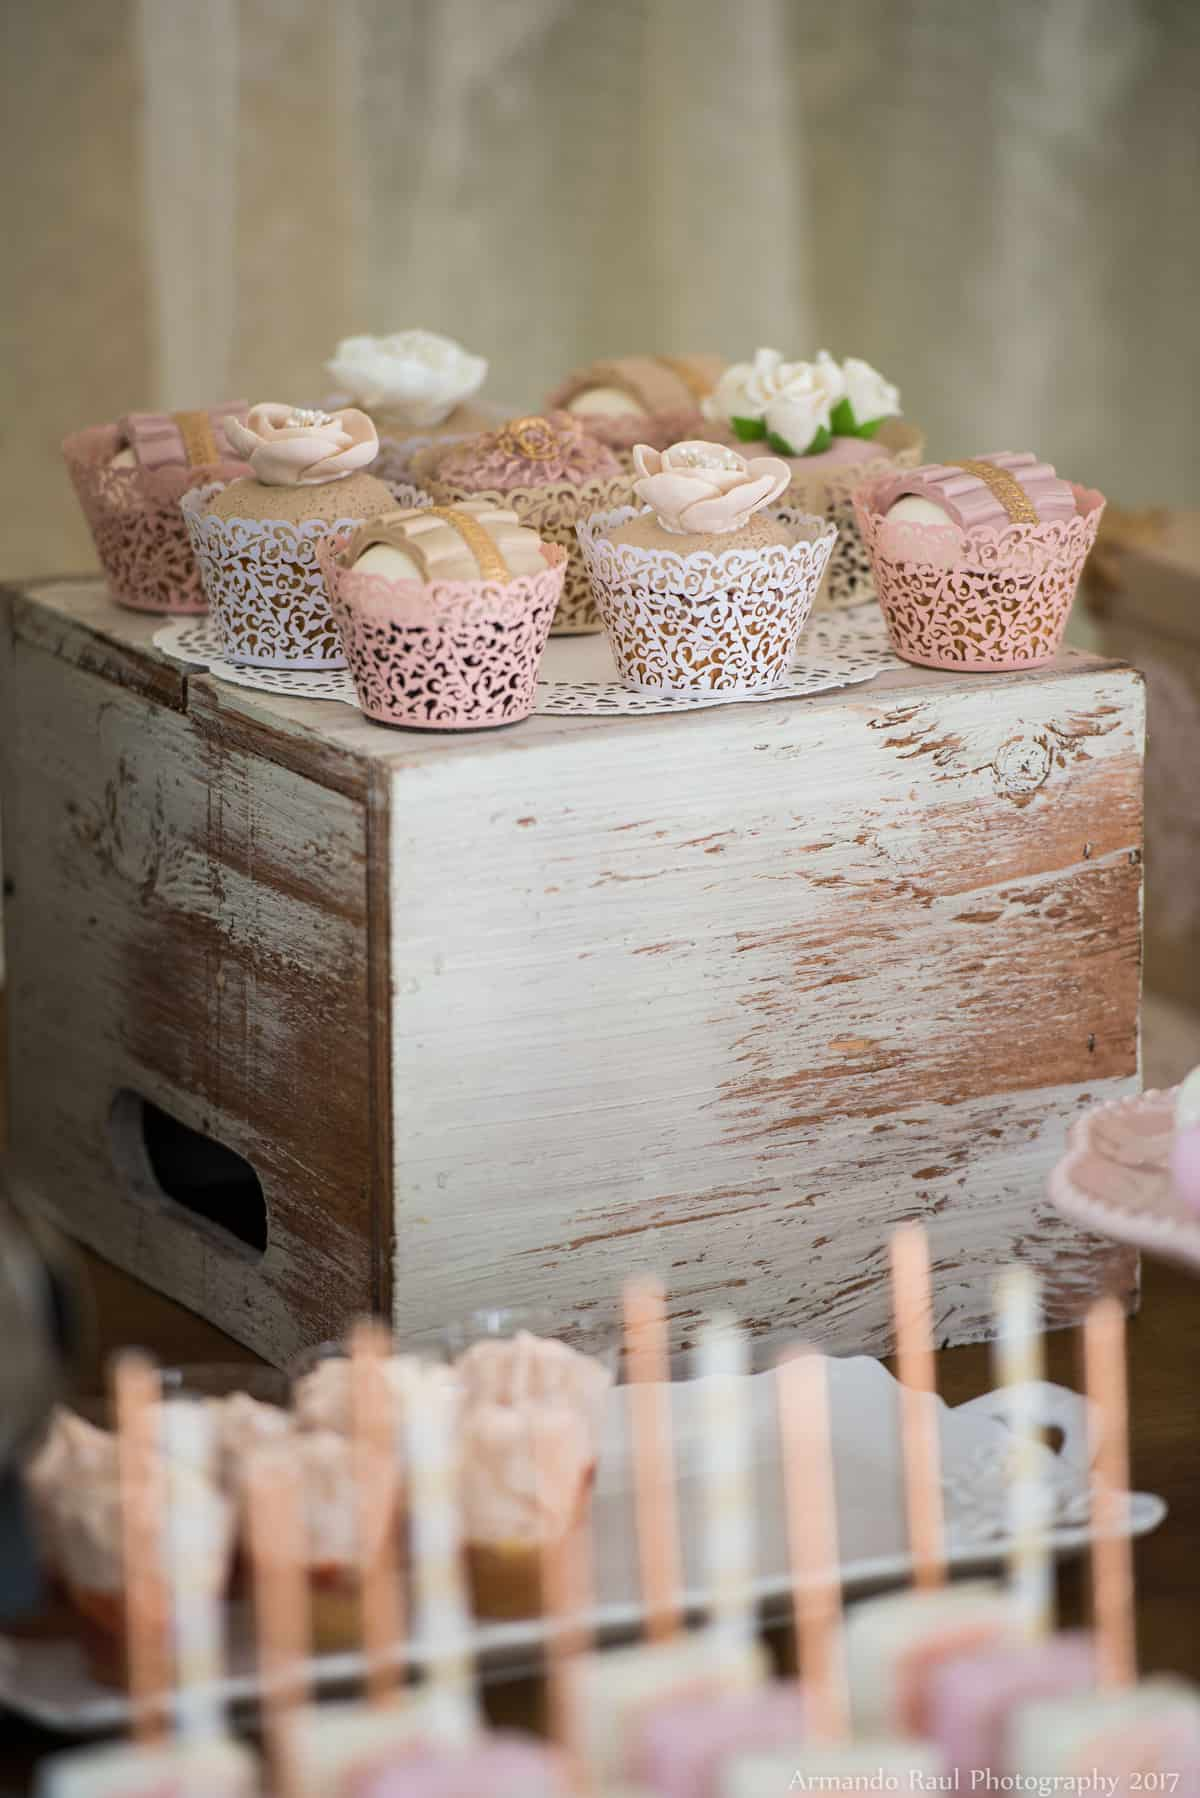 Cupcakes | Vintage Travel Theme Baby Shower | Baby Girl | You Are My Greatest Adventure | Lace, World Map, Flowers, Cameras, Vintage Decor | Cake, Sweets, Desserts, Lounge Seating Area, World Cuisine, Food Stations, Seating Arrangement | Home Baby Shower | Blush Pink, Beige, Gold, Champagne, White